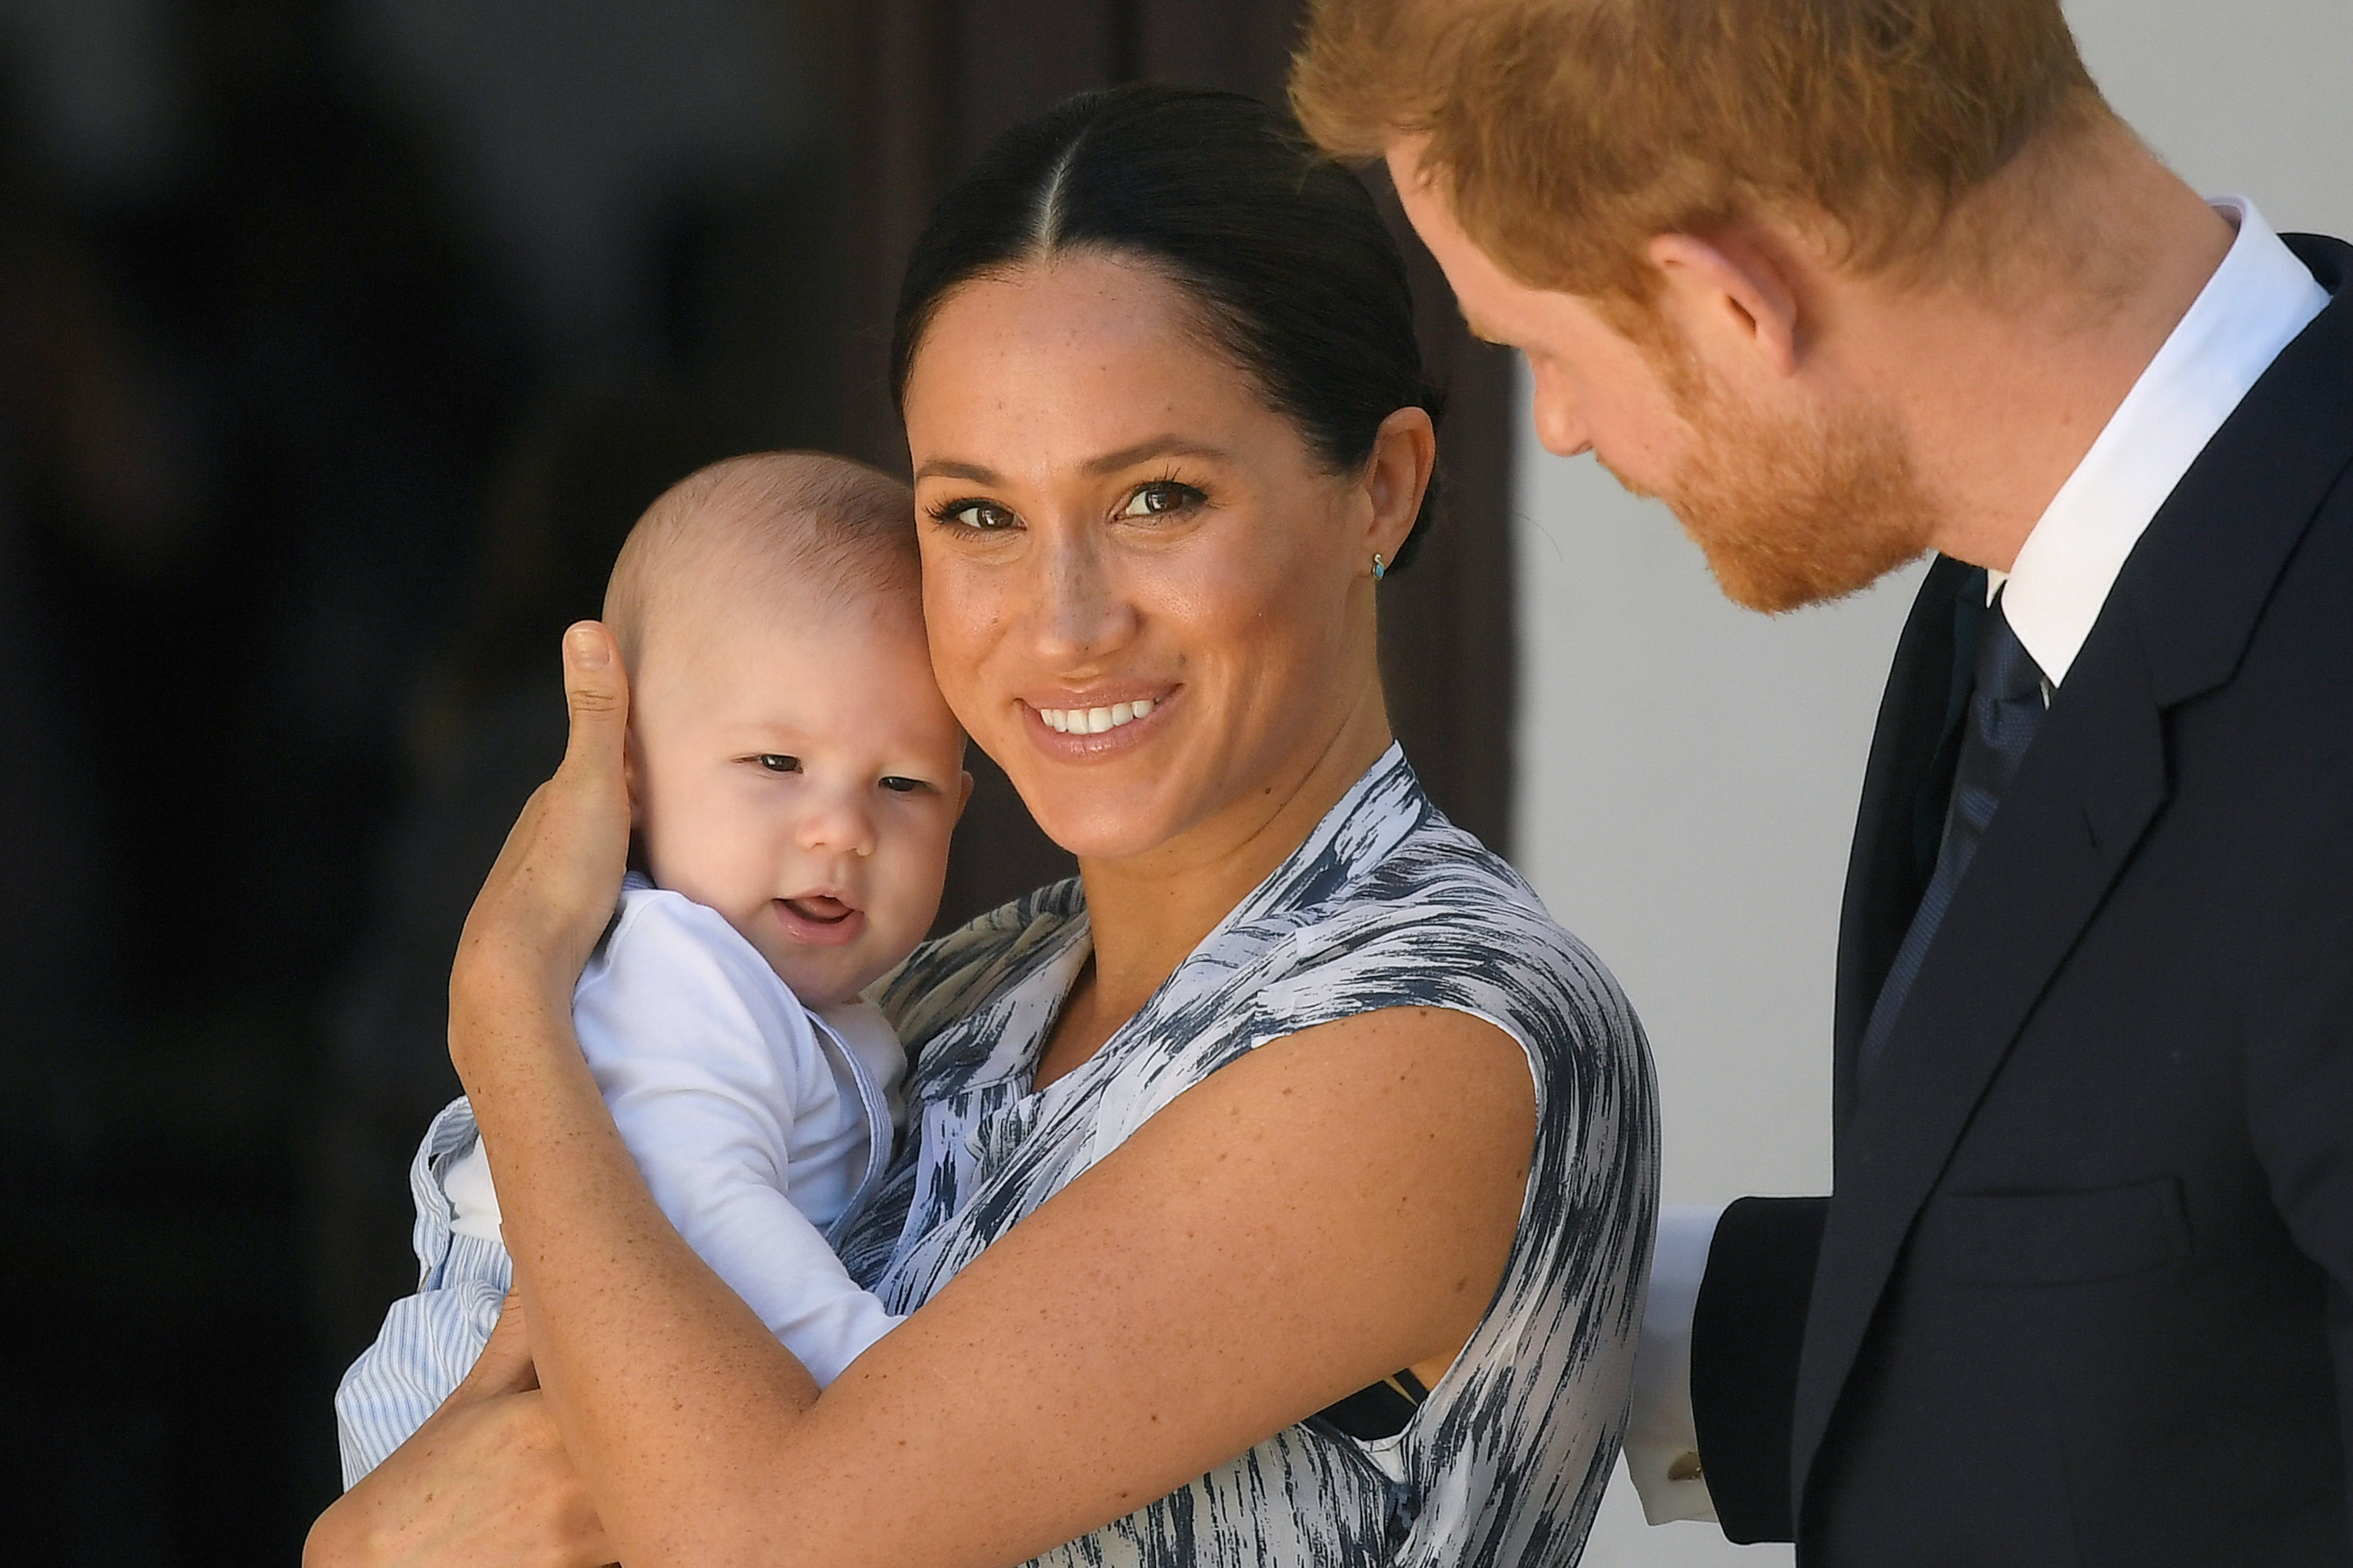 CAPE TOWN, SOUTH AFRICA - SEPTEMBER 25: Prince Harry, Duke of Sussex and Meghan, Duchess of Sussex and their baby son Archie Mountbatten-Windsor at a meeting with Archbishop Desmond Tutu at the Desmond & Leah Tutu Legacy Foundation during their royal tour of South Africa on September 25, 2019 in Cape Town, South Africa. (Photo by Toby Melville - Pool/Getty Images)